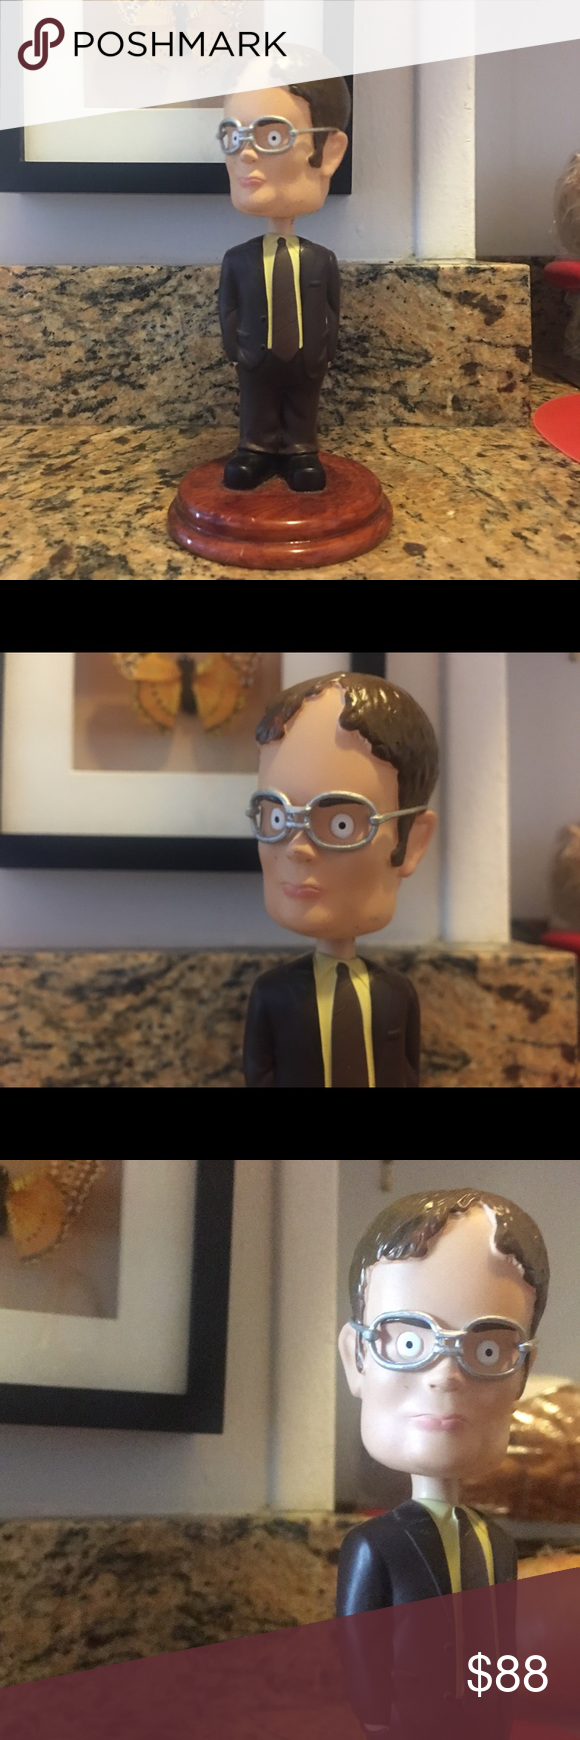 Dwight Bobblehead The Office Collectable Bobble Head Dwight Bobblehead Things To Sell